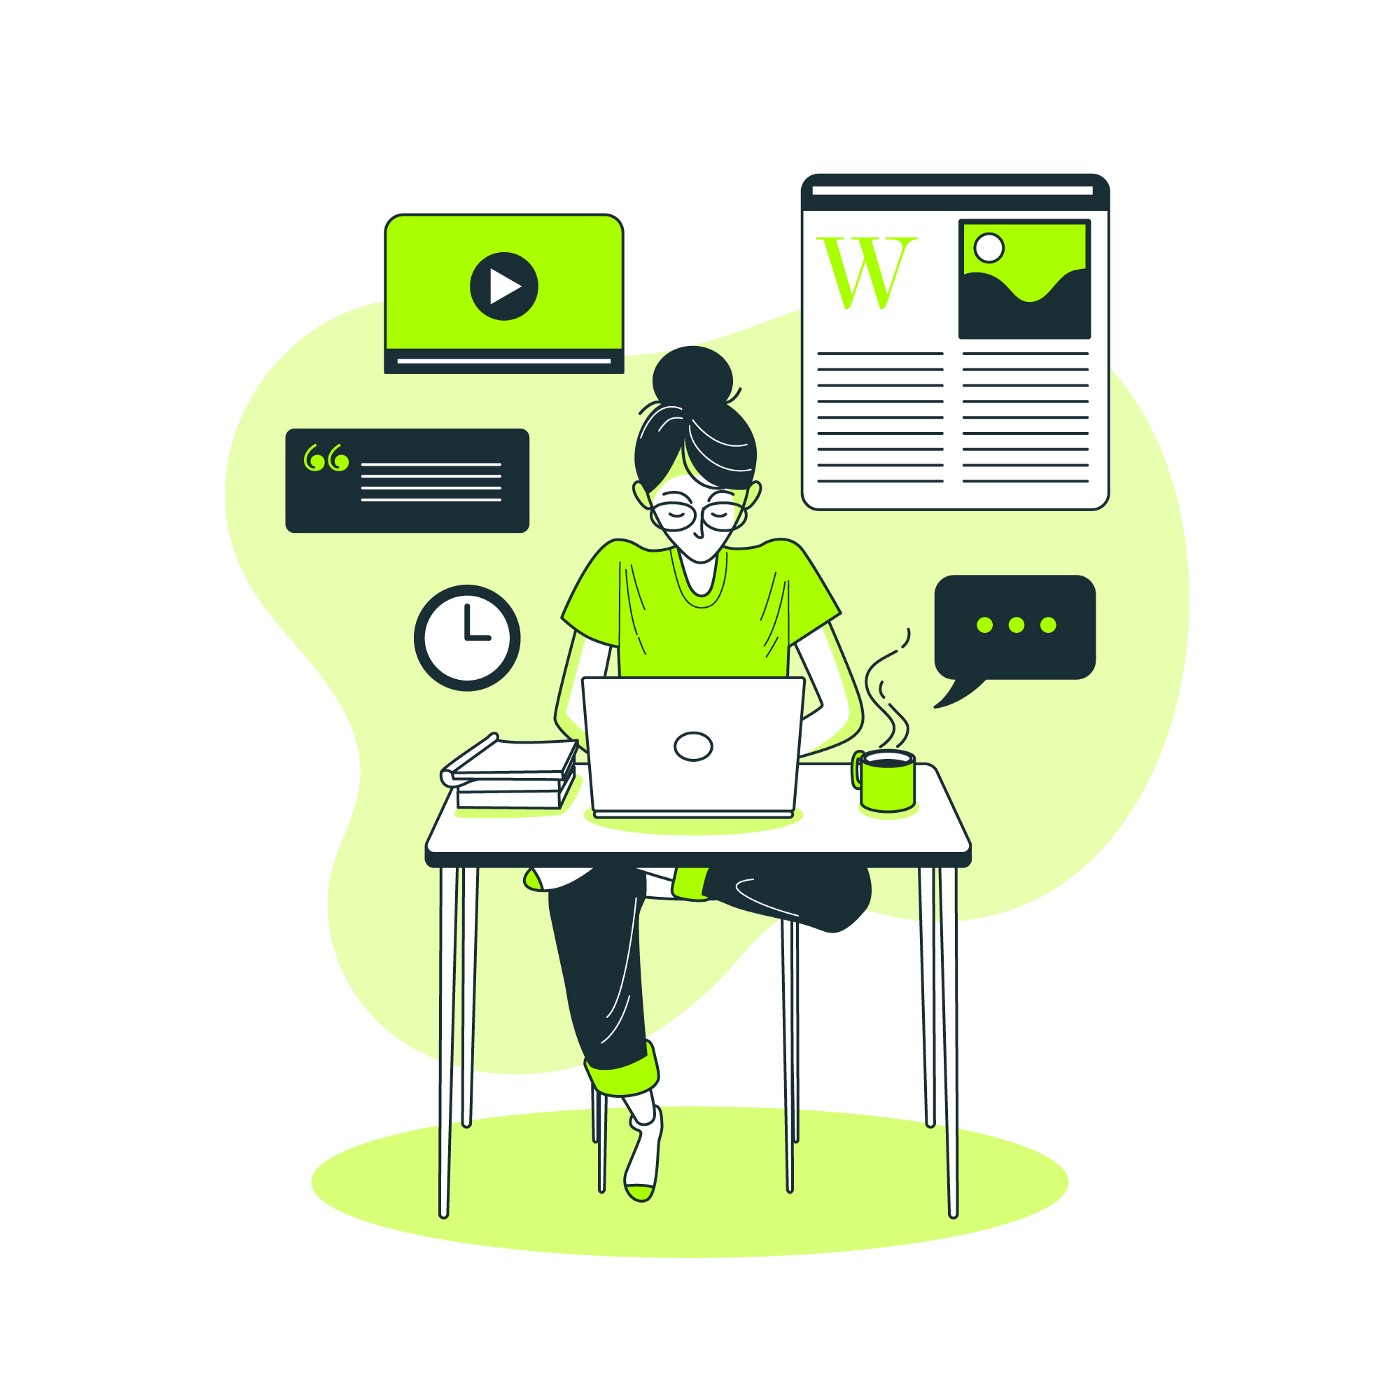 Illustration of a woman siting at a desk and working on a laptop.